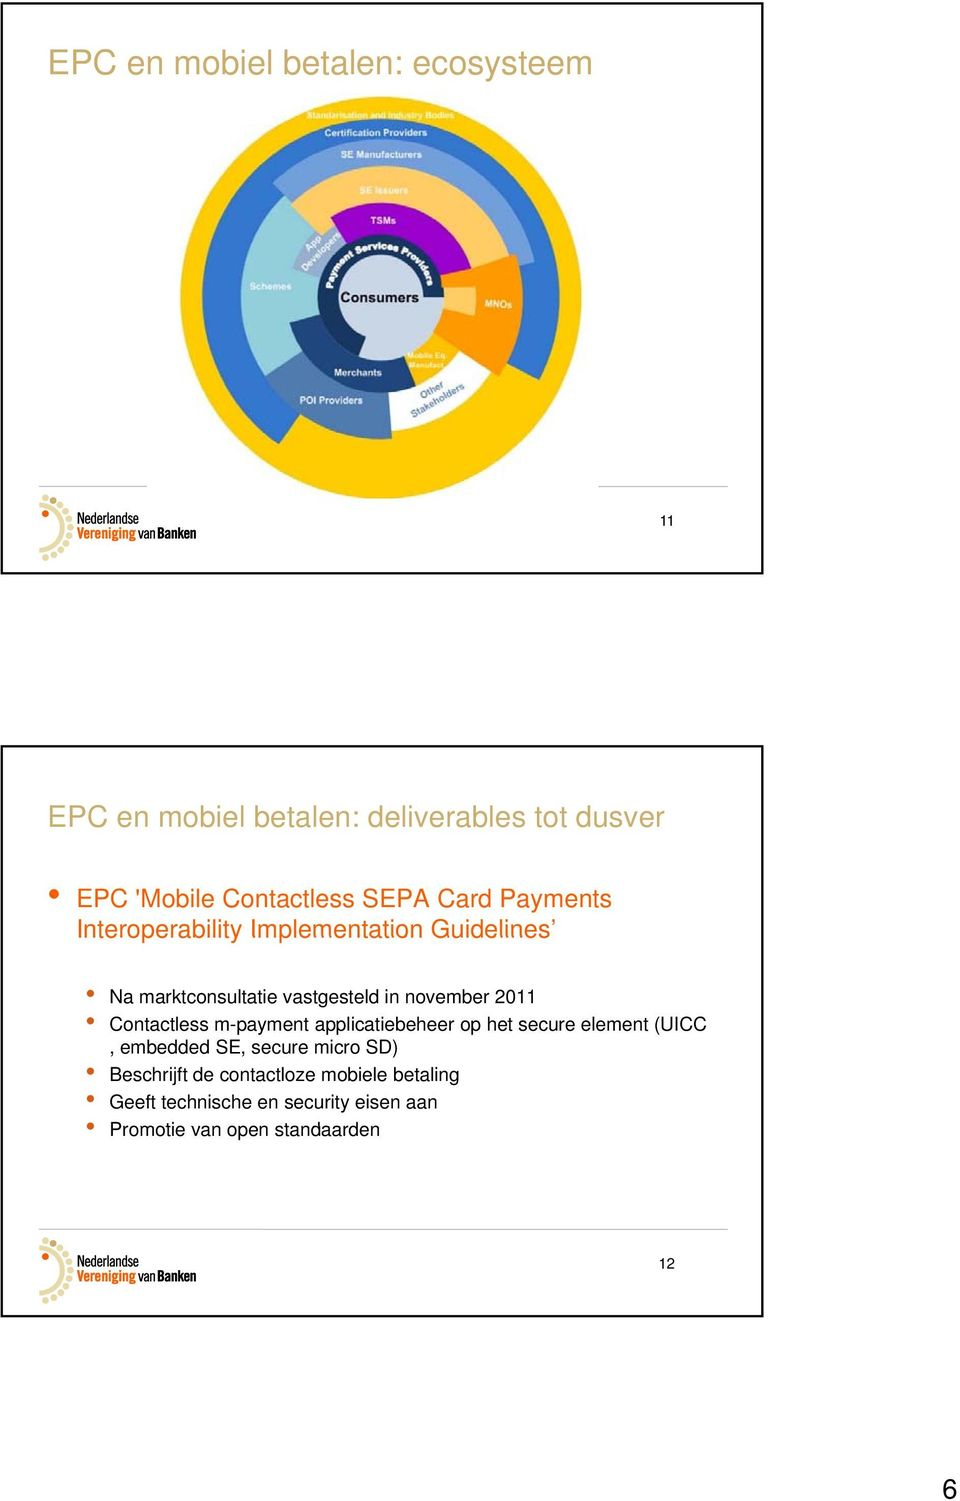 2011 Contactless m-payment applicatiebeheer op het secure element (UICC, embedded SE, secure micro SD)